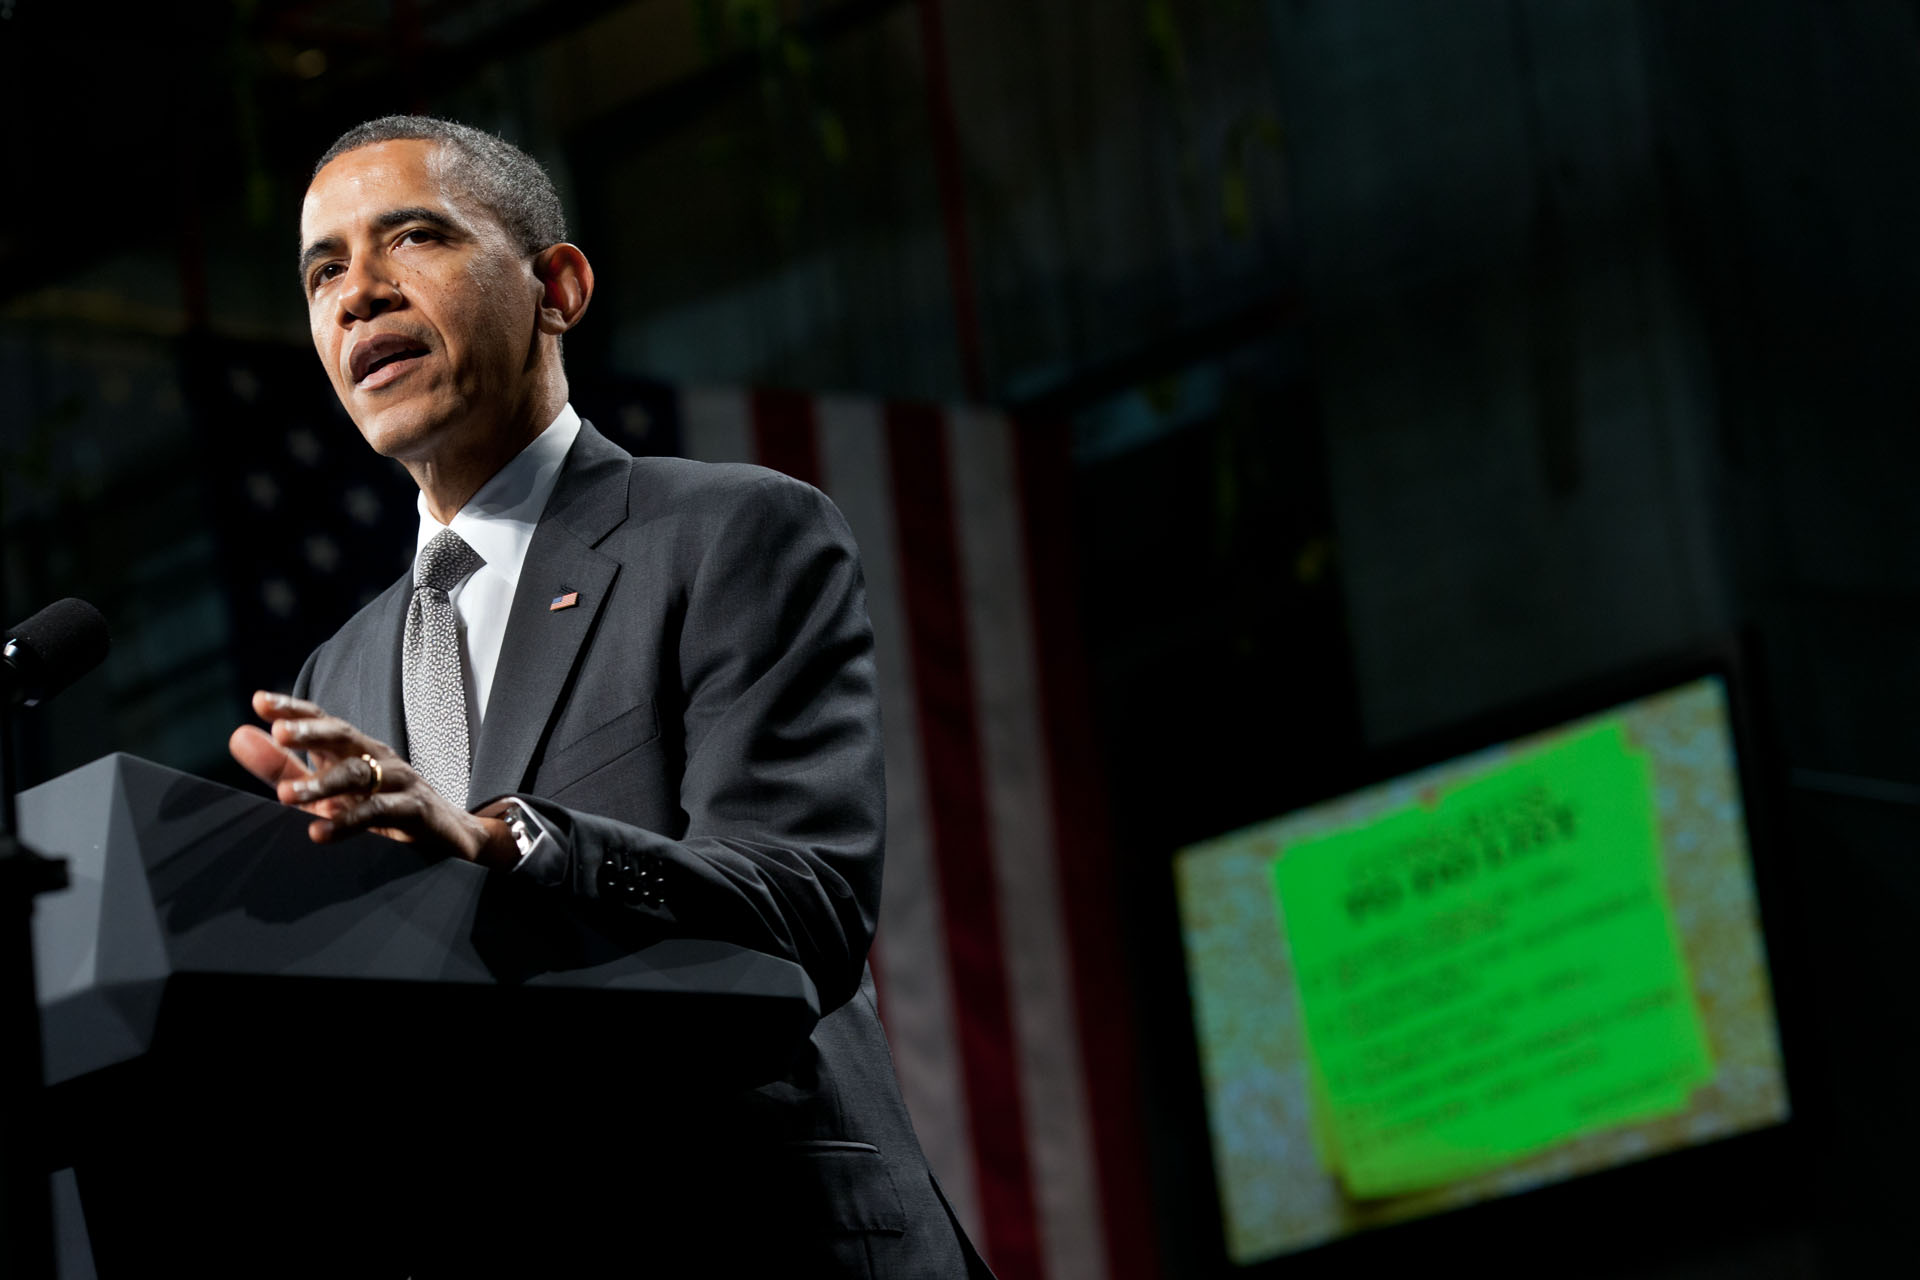 President Barack Obama delivers remarks on the economy at the State University of New York, in Albany